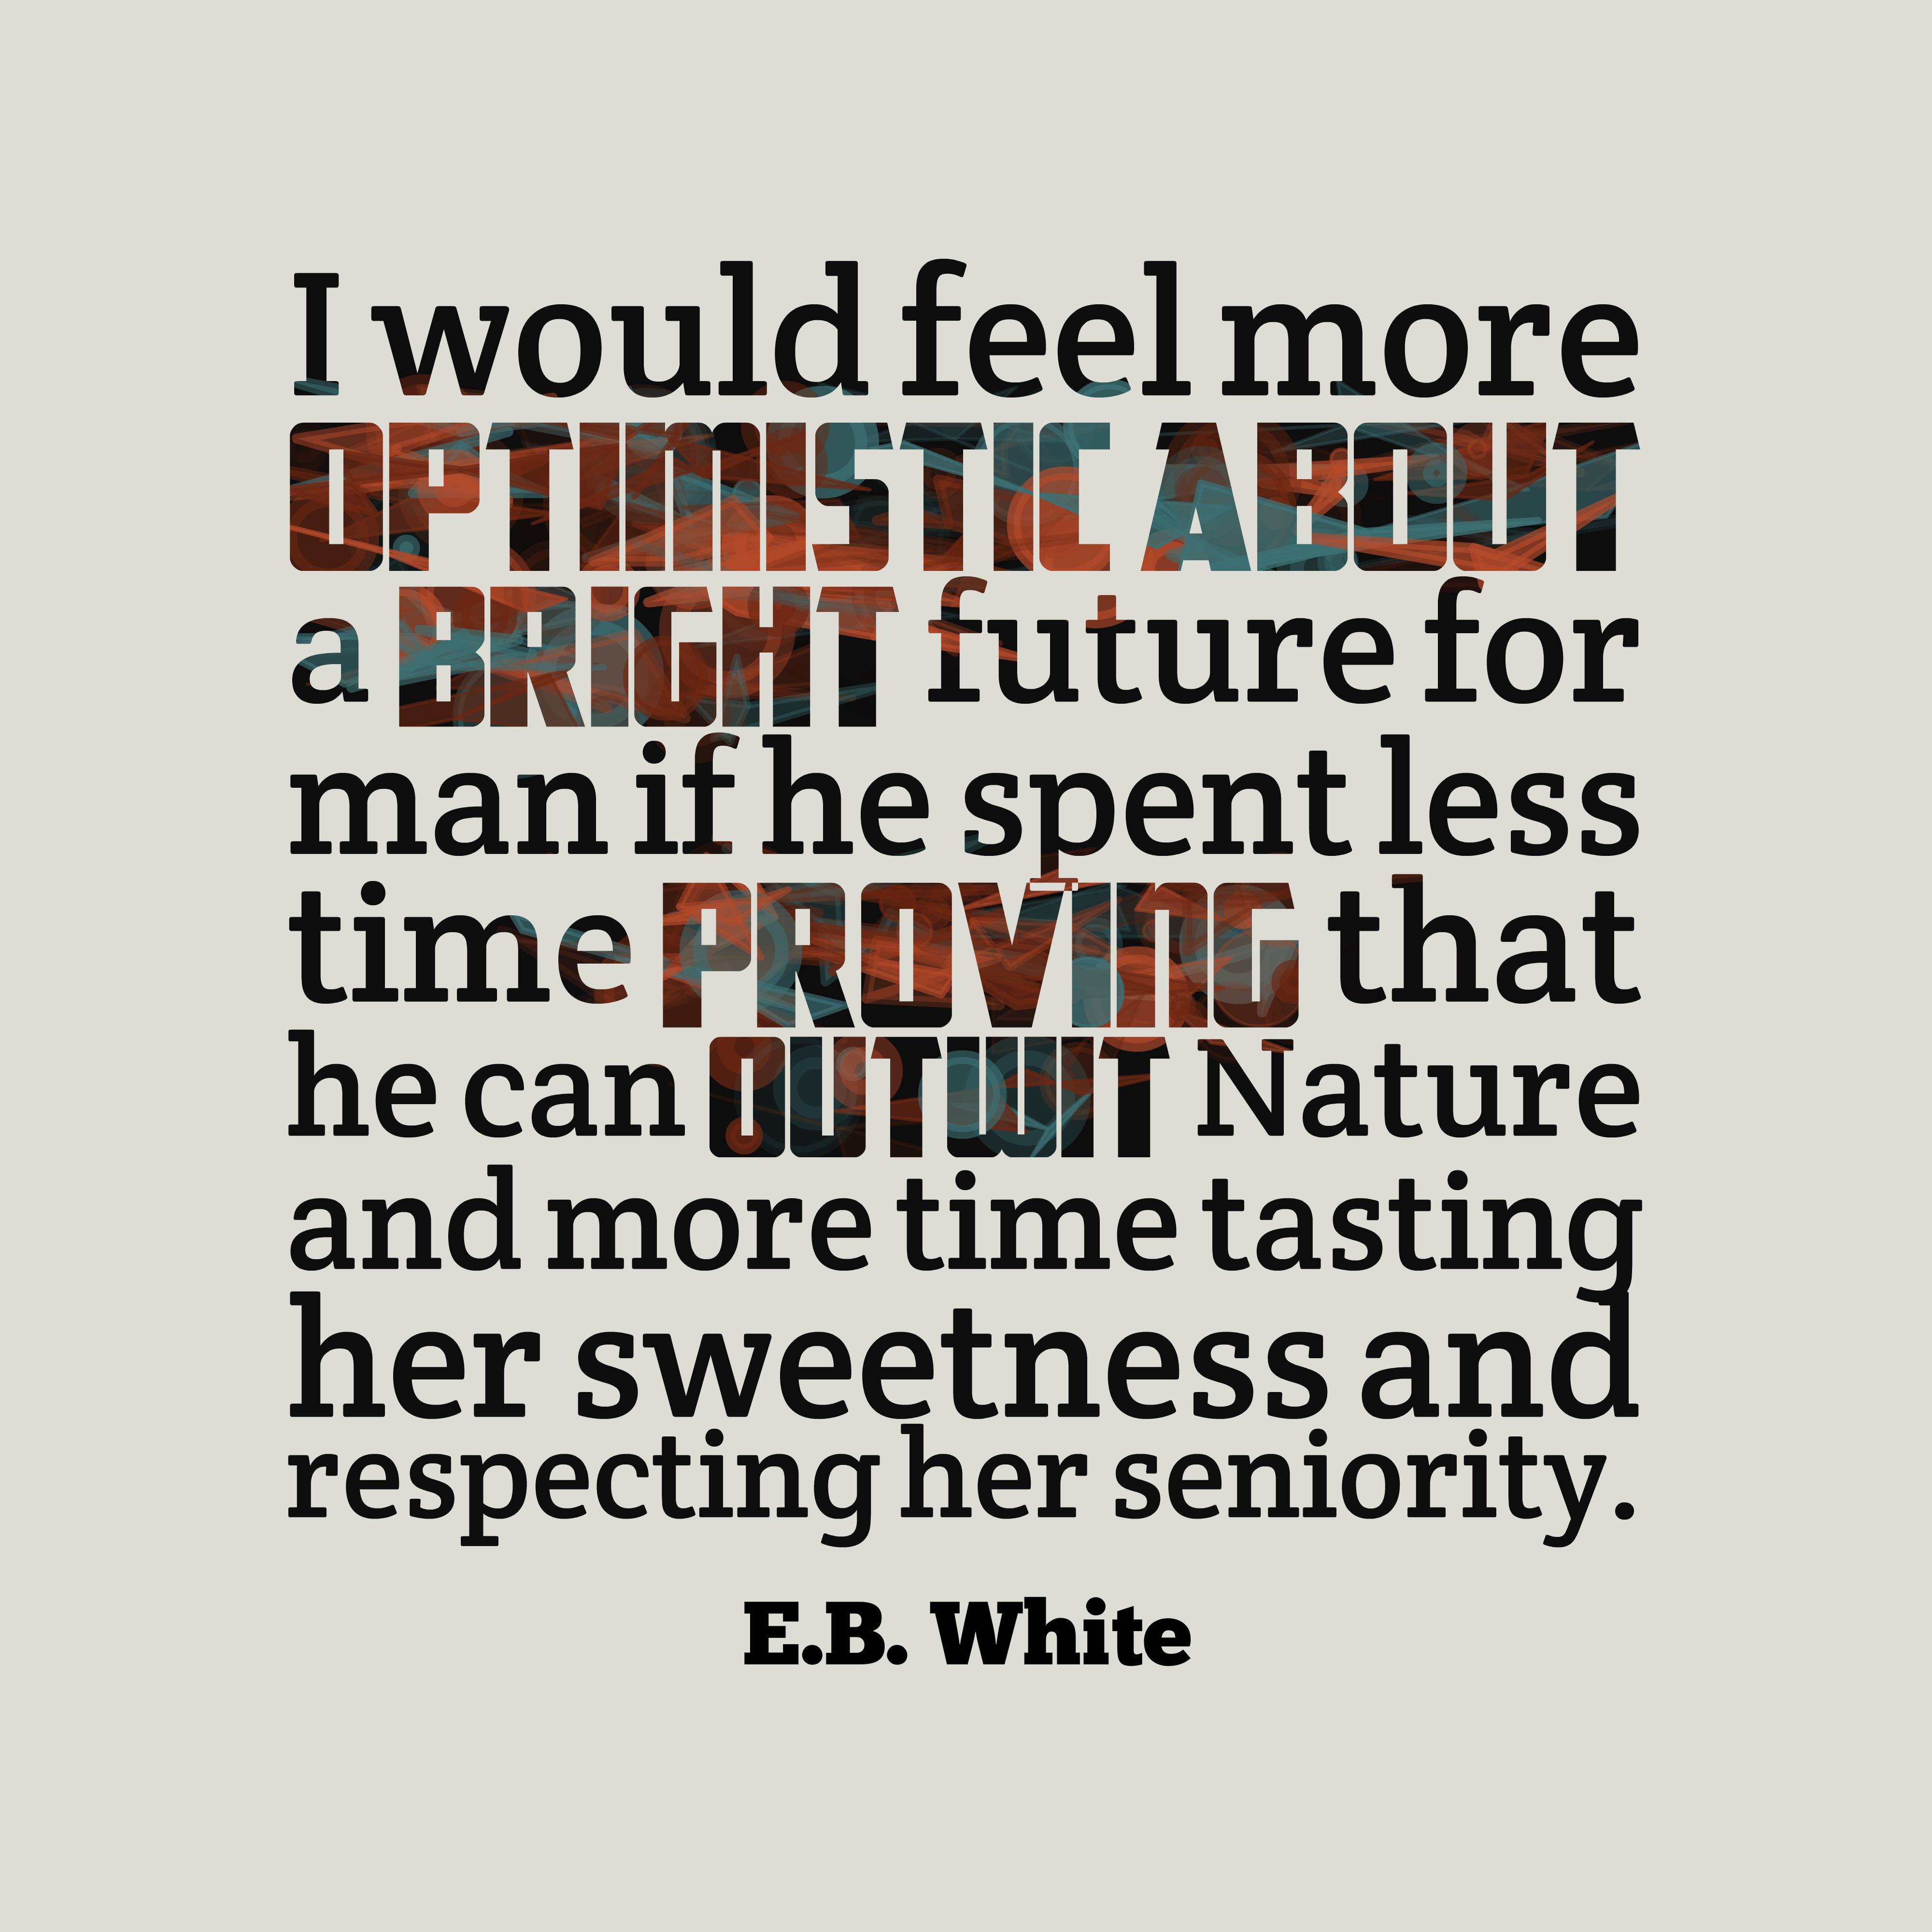 Quotes image of I would feel more optimistic about a bright future for man if he spent less time proving that he can outwit Nature and more time tasting her sweetness and respecting her seniority.